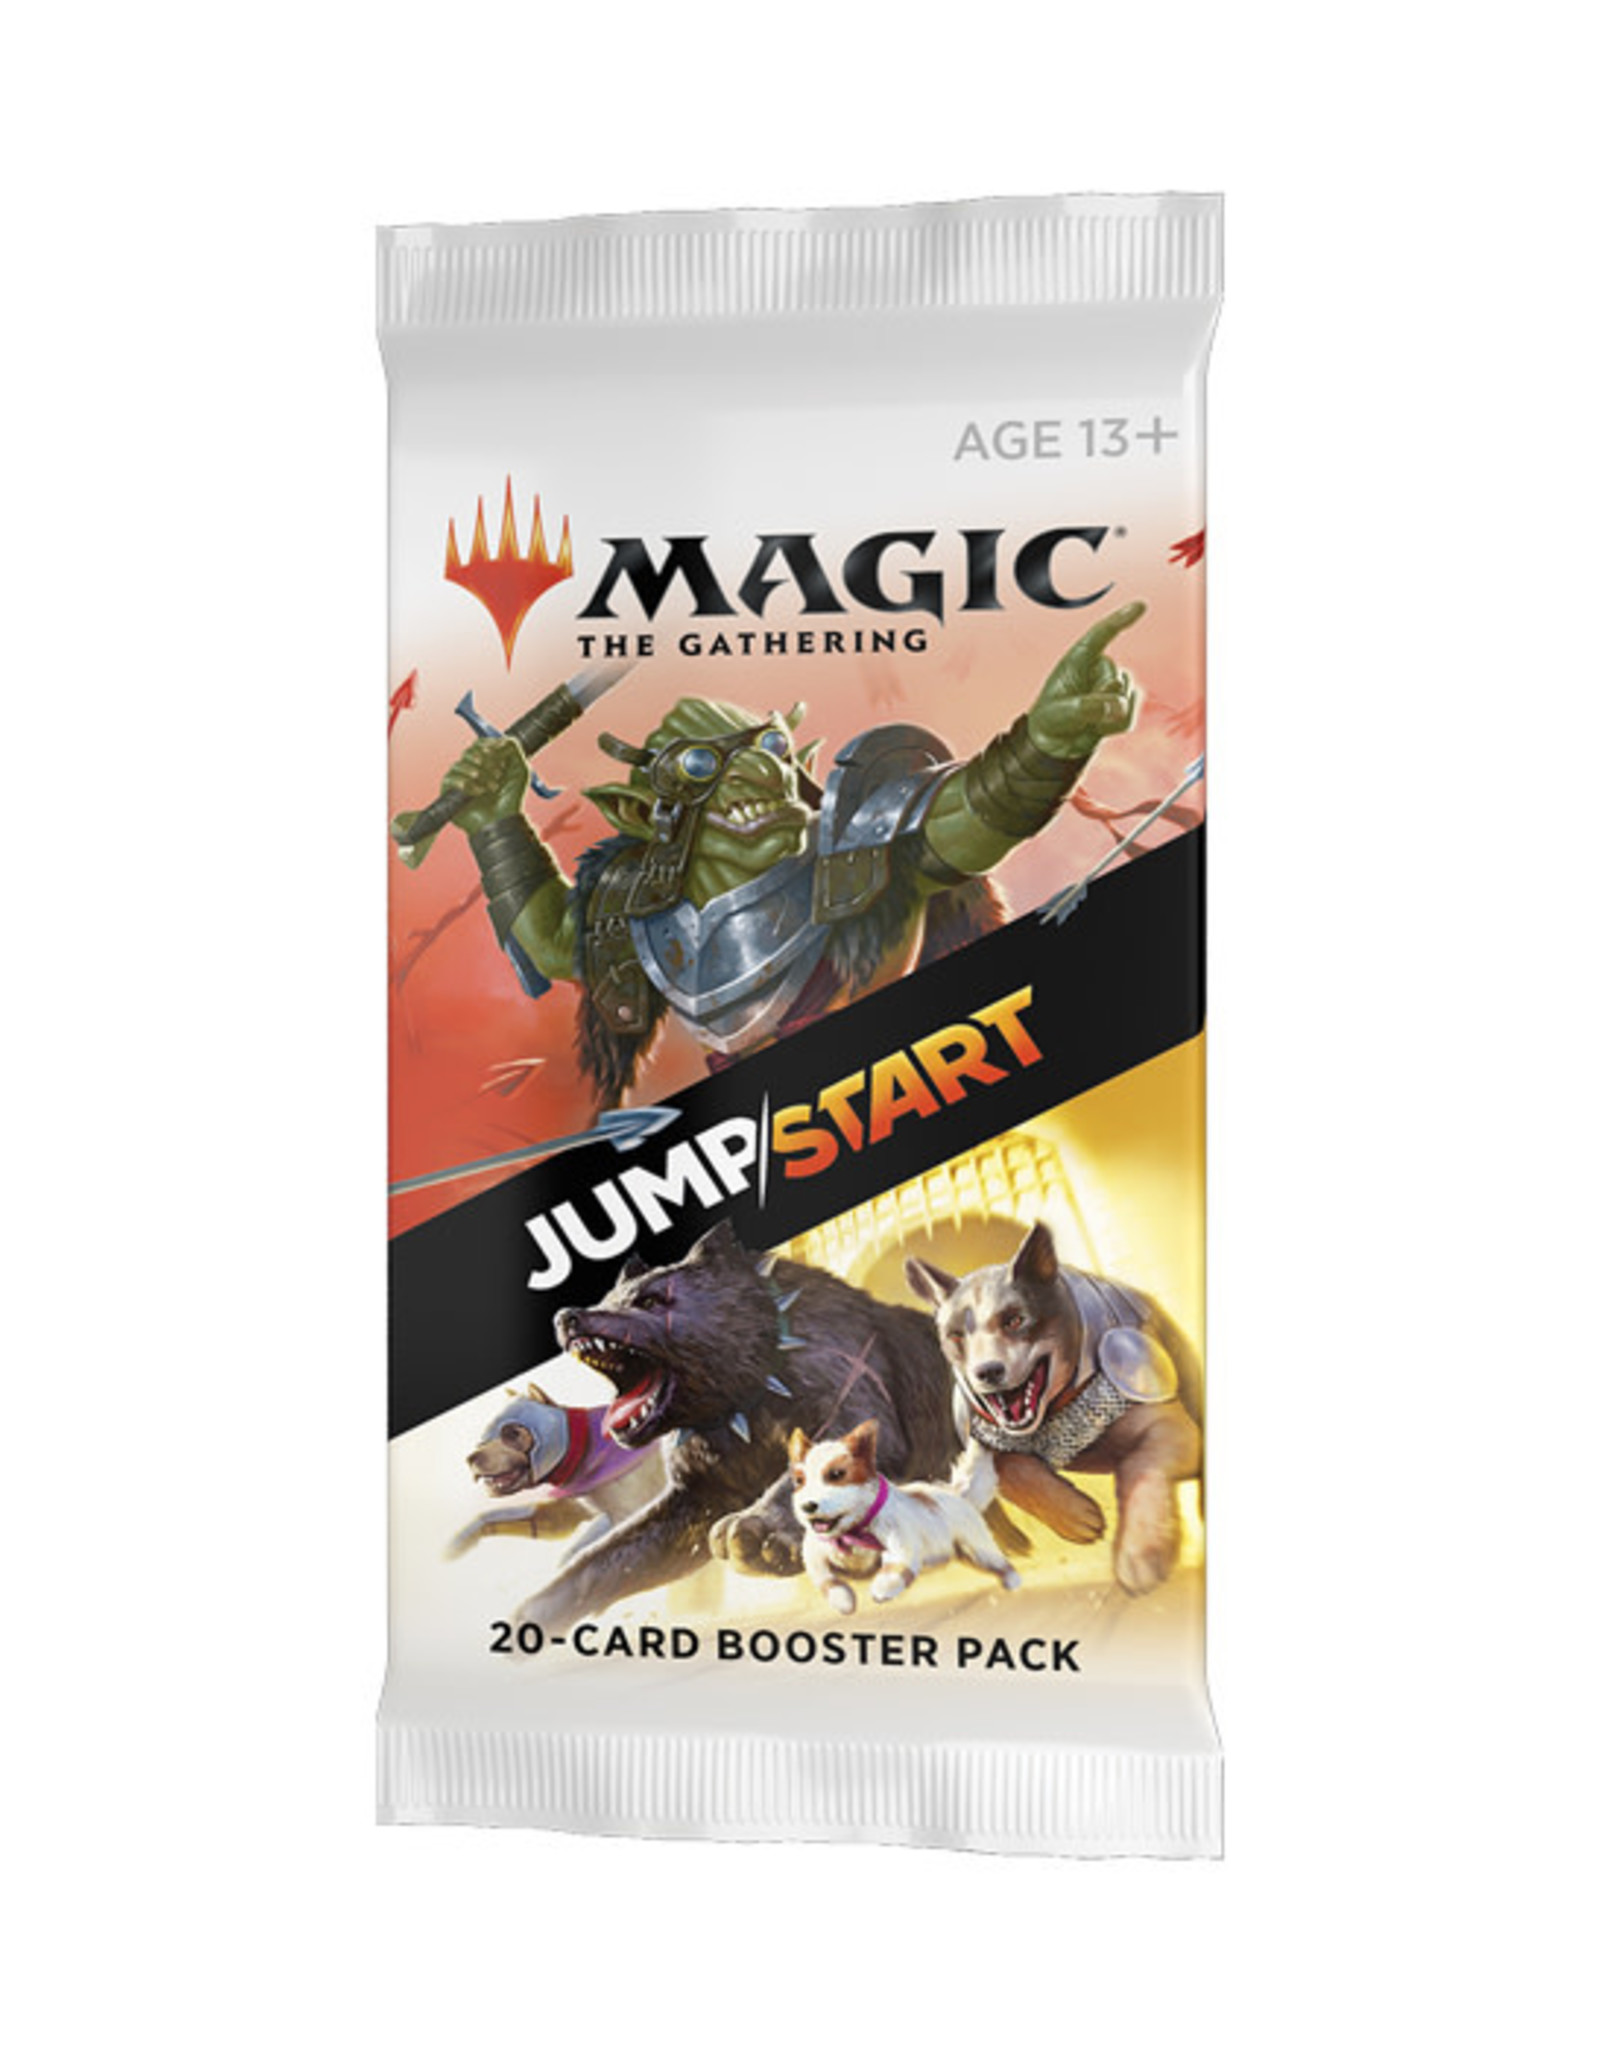 Magic: The Gathering Magic: The Gathering - Jumpstart - Booster Pack